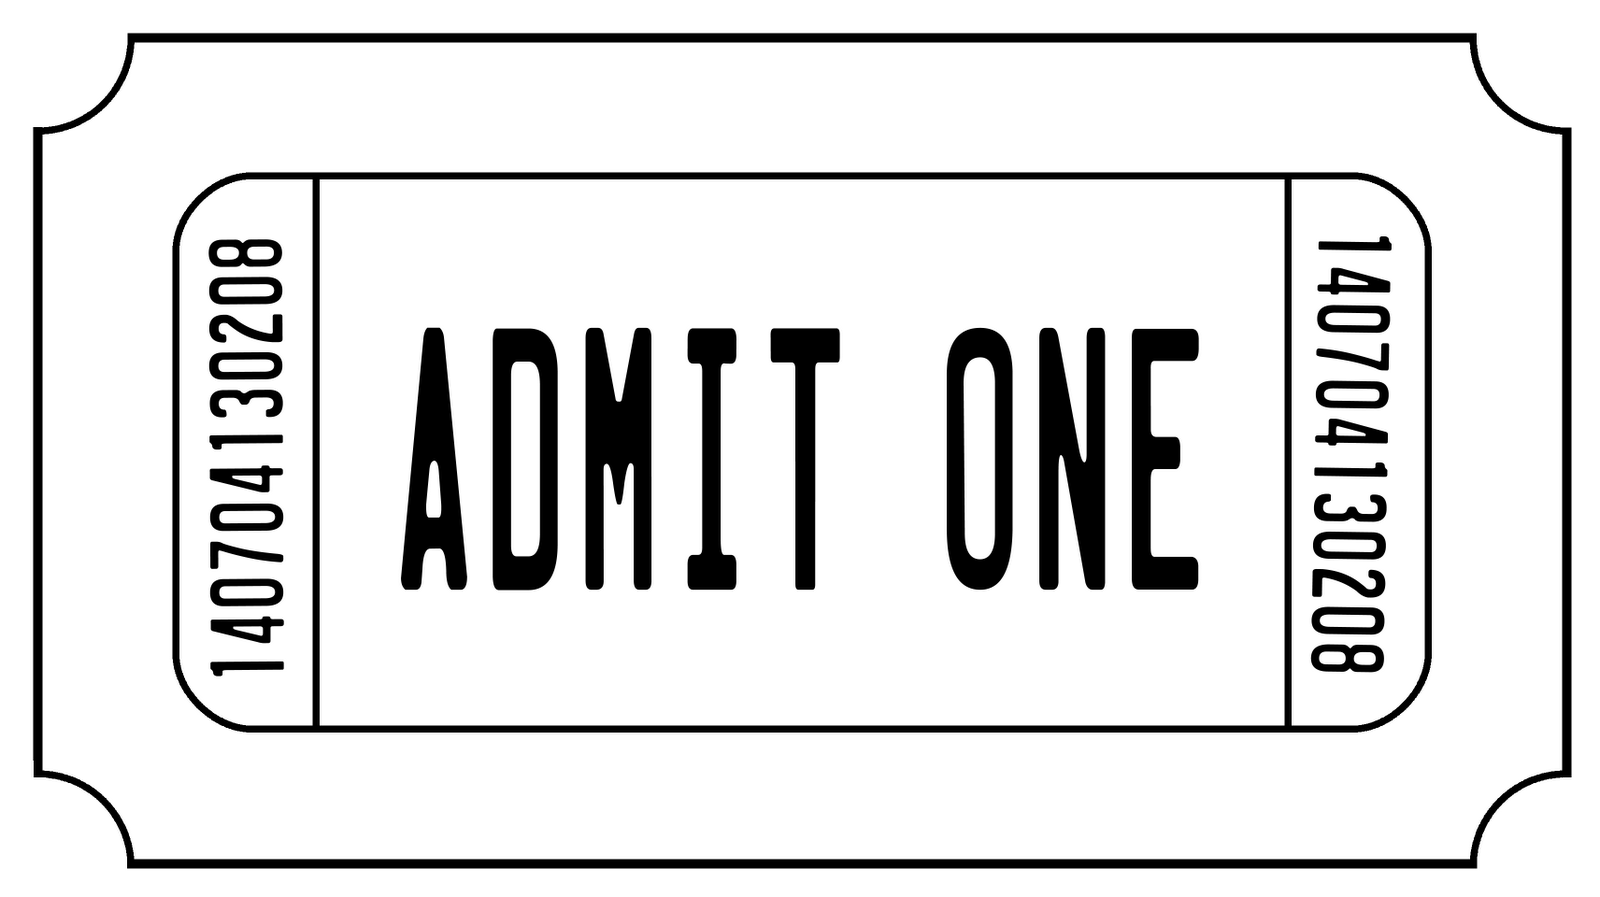 Free Admit One Ticket Png, Download Free Clip Art, Free Clip.